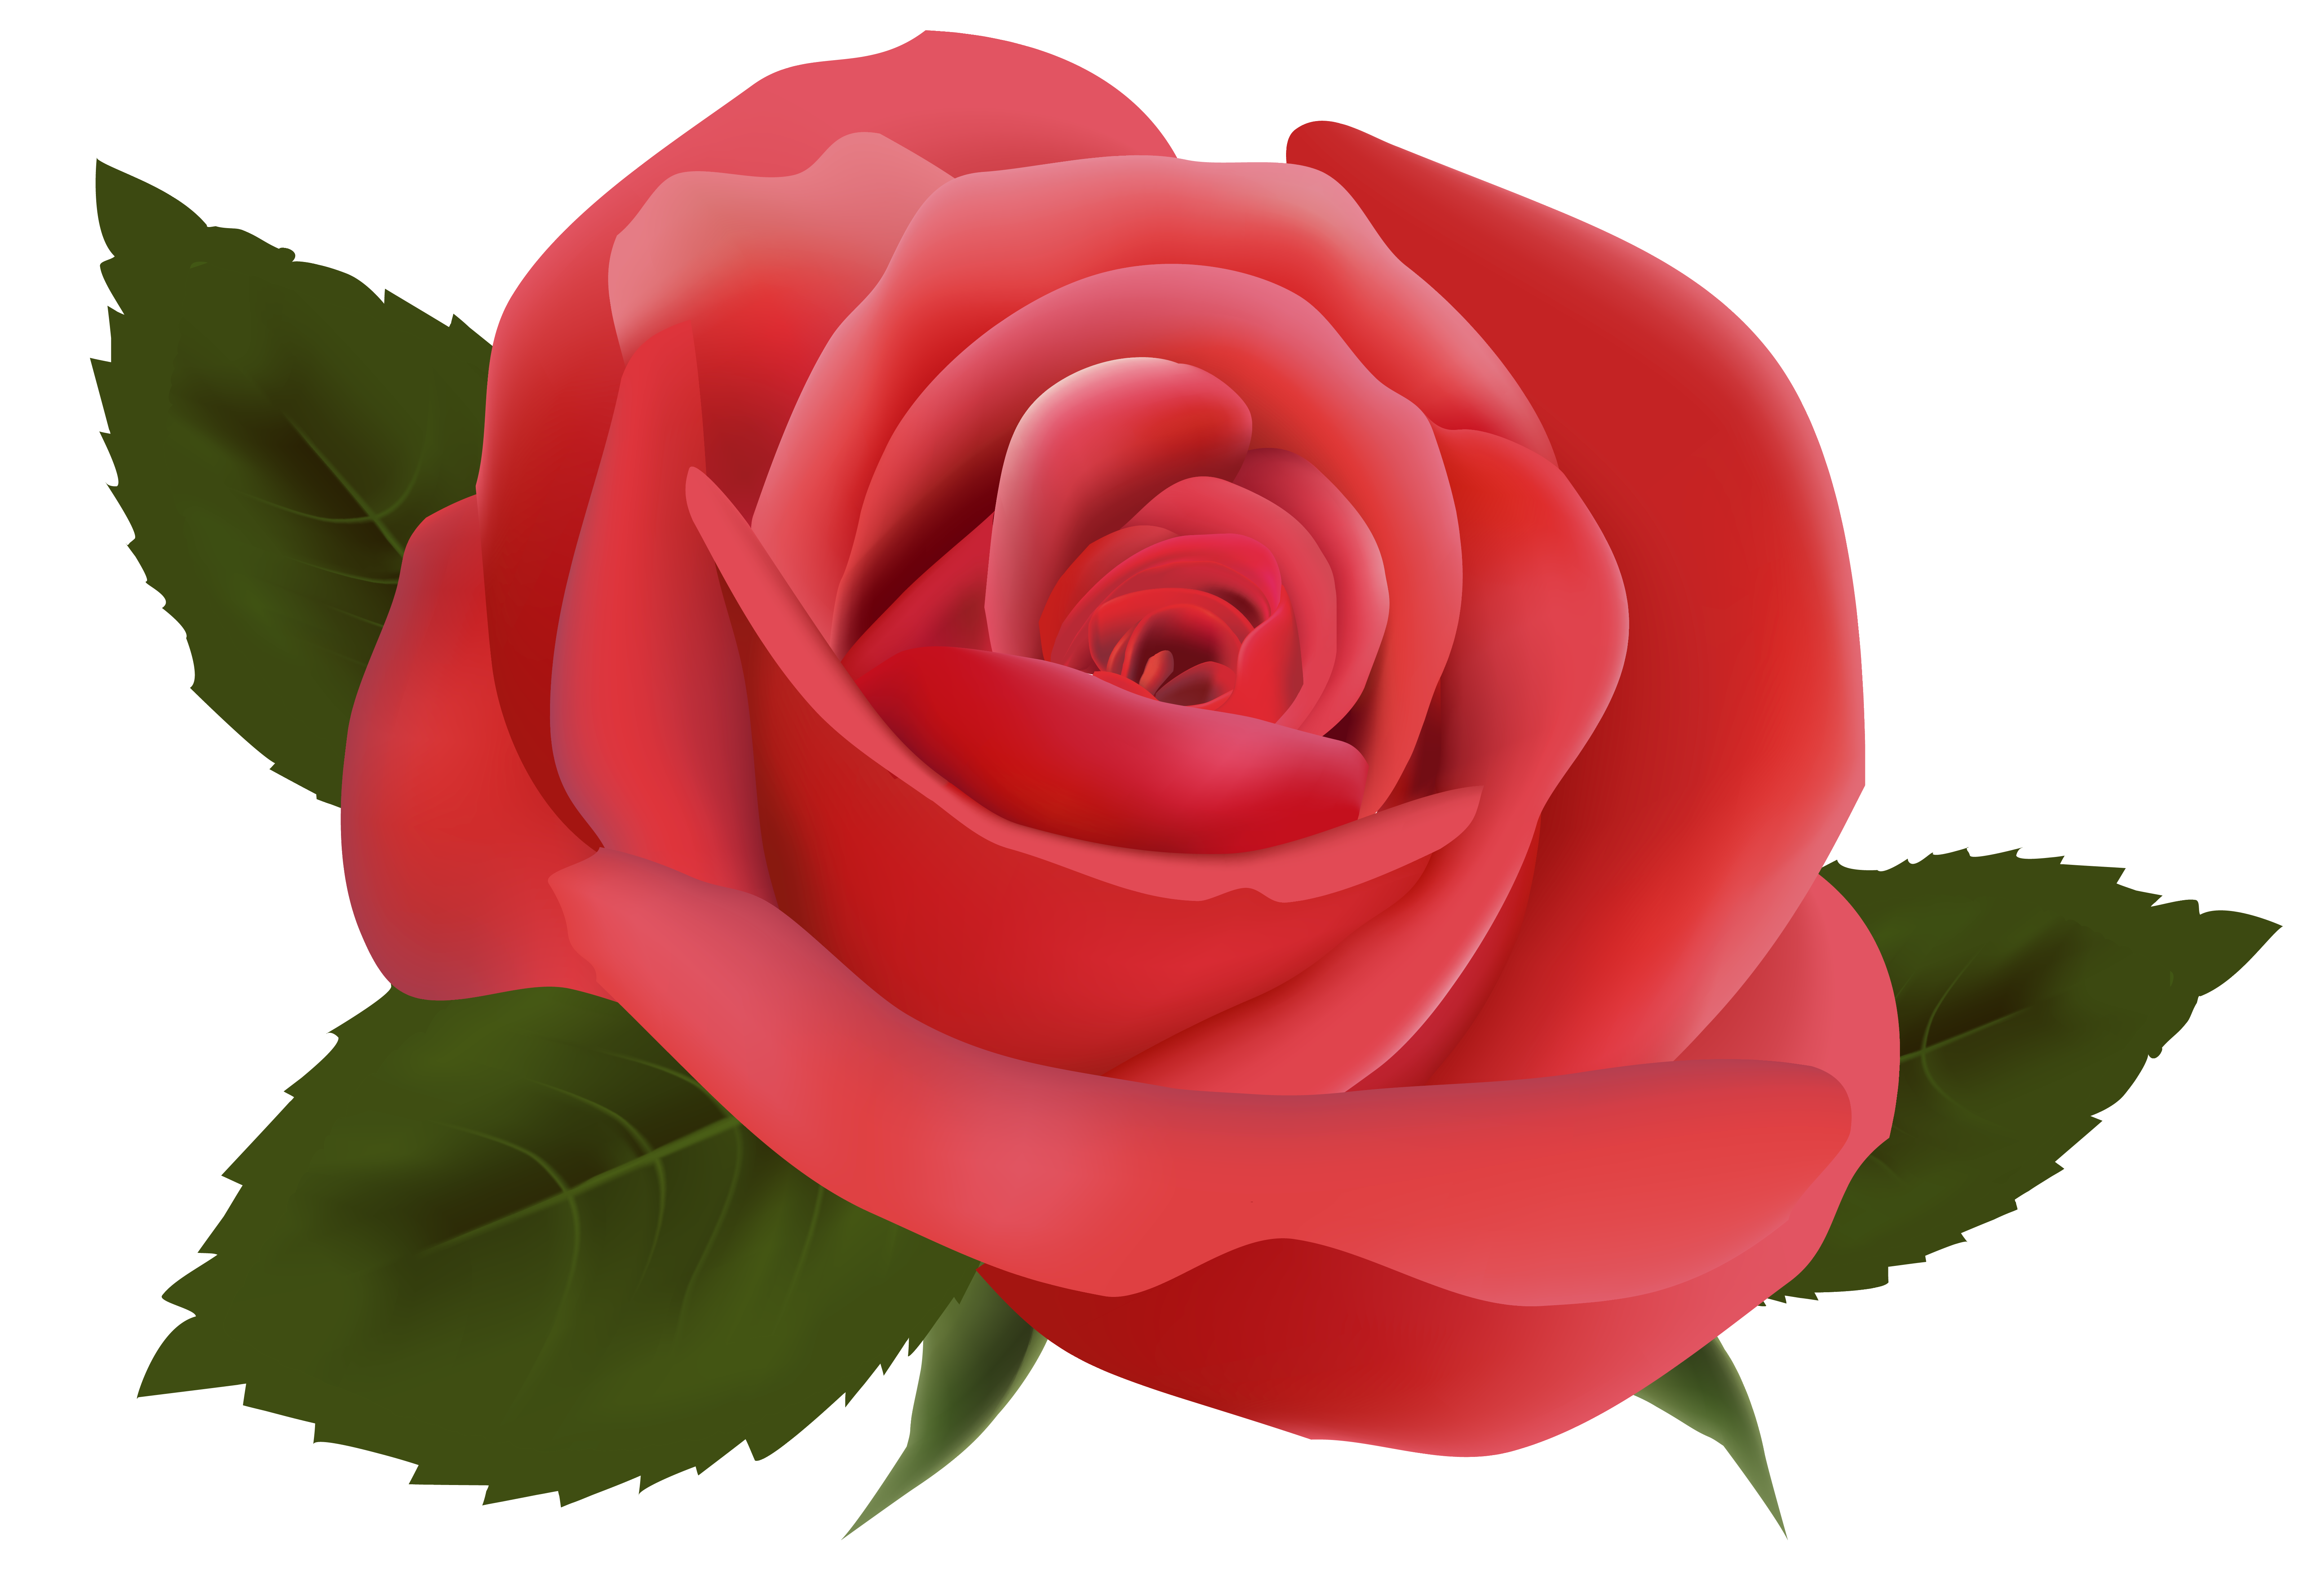 Families clipart red. Rose png image gallery